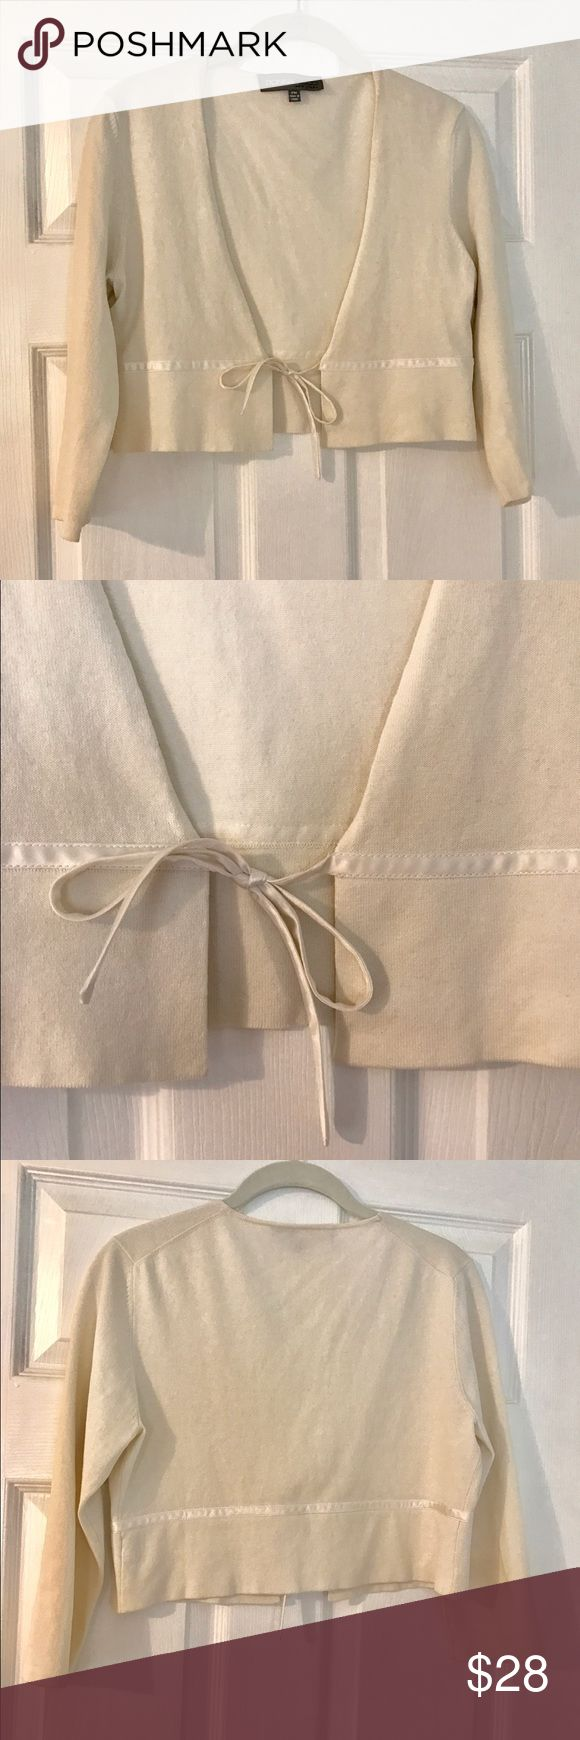 Donna Ricco cropped cream bolero satin ribbon tie Cotton/rayon cream colored bolero with 3/4 sleeves and satin ribbon closure.  Perfect to wear with your summer sleeveless and strapless dresses.  Petite Medium.  Like new. Donna Ricco Sweaters